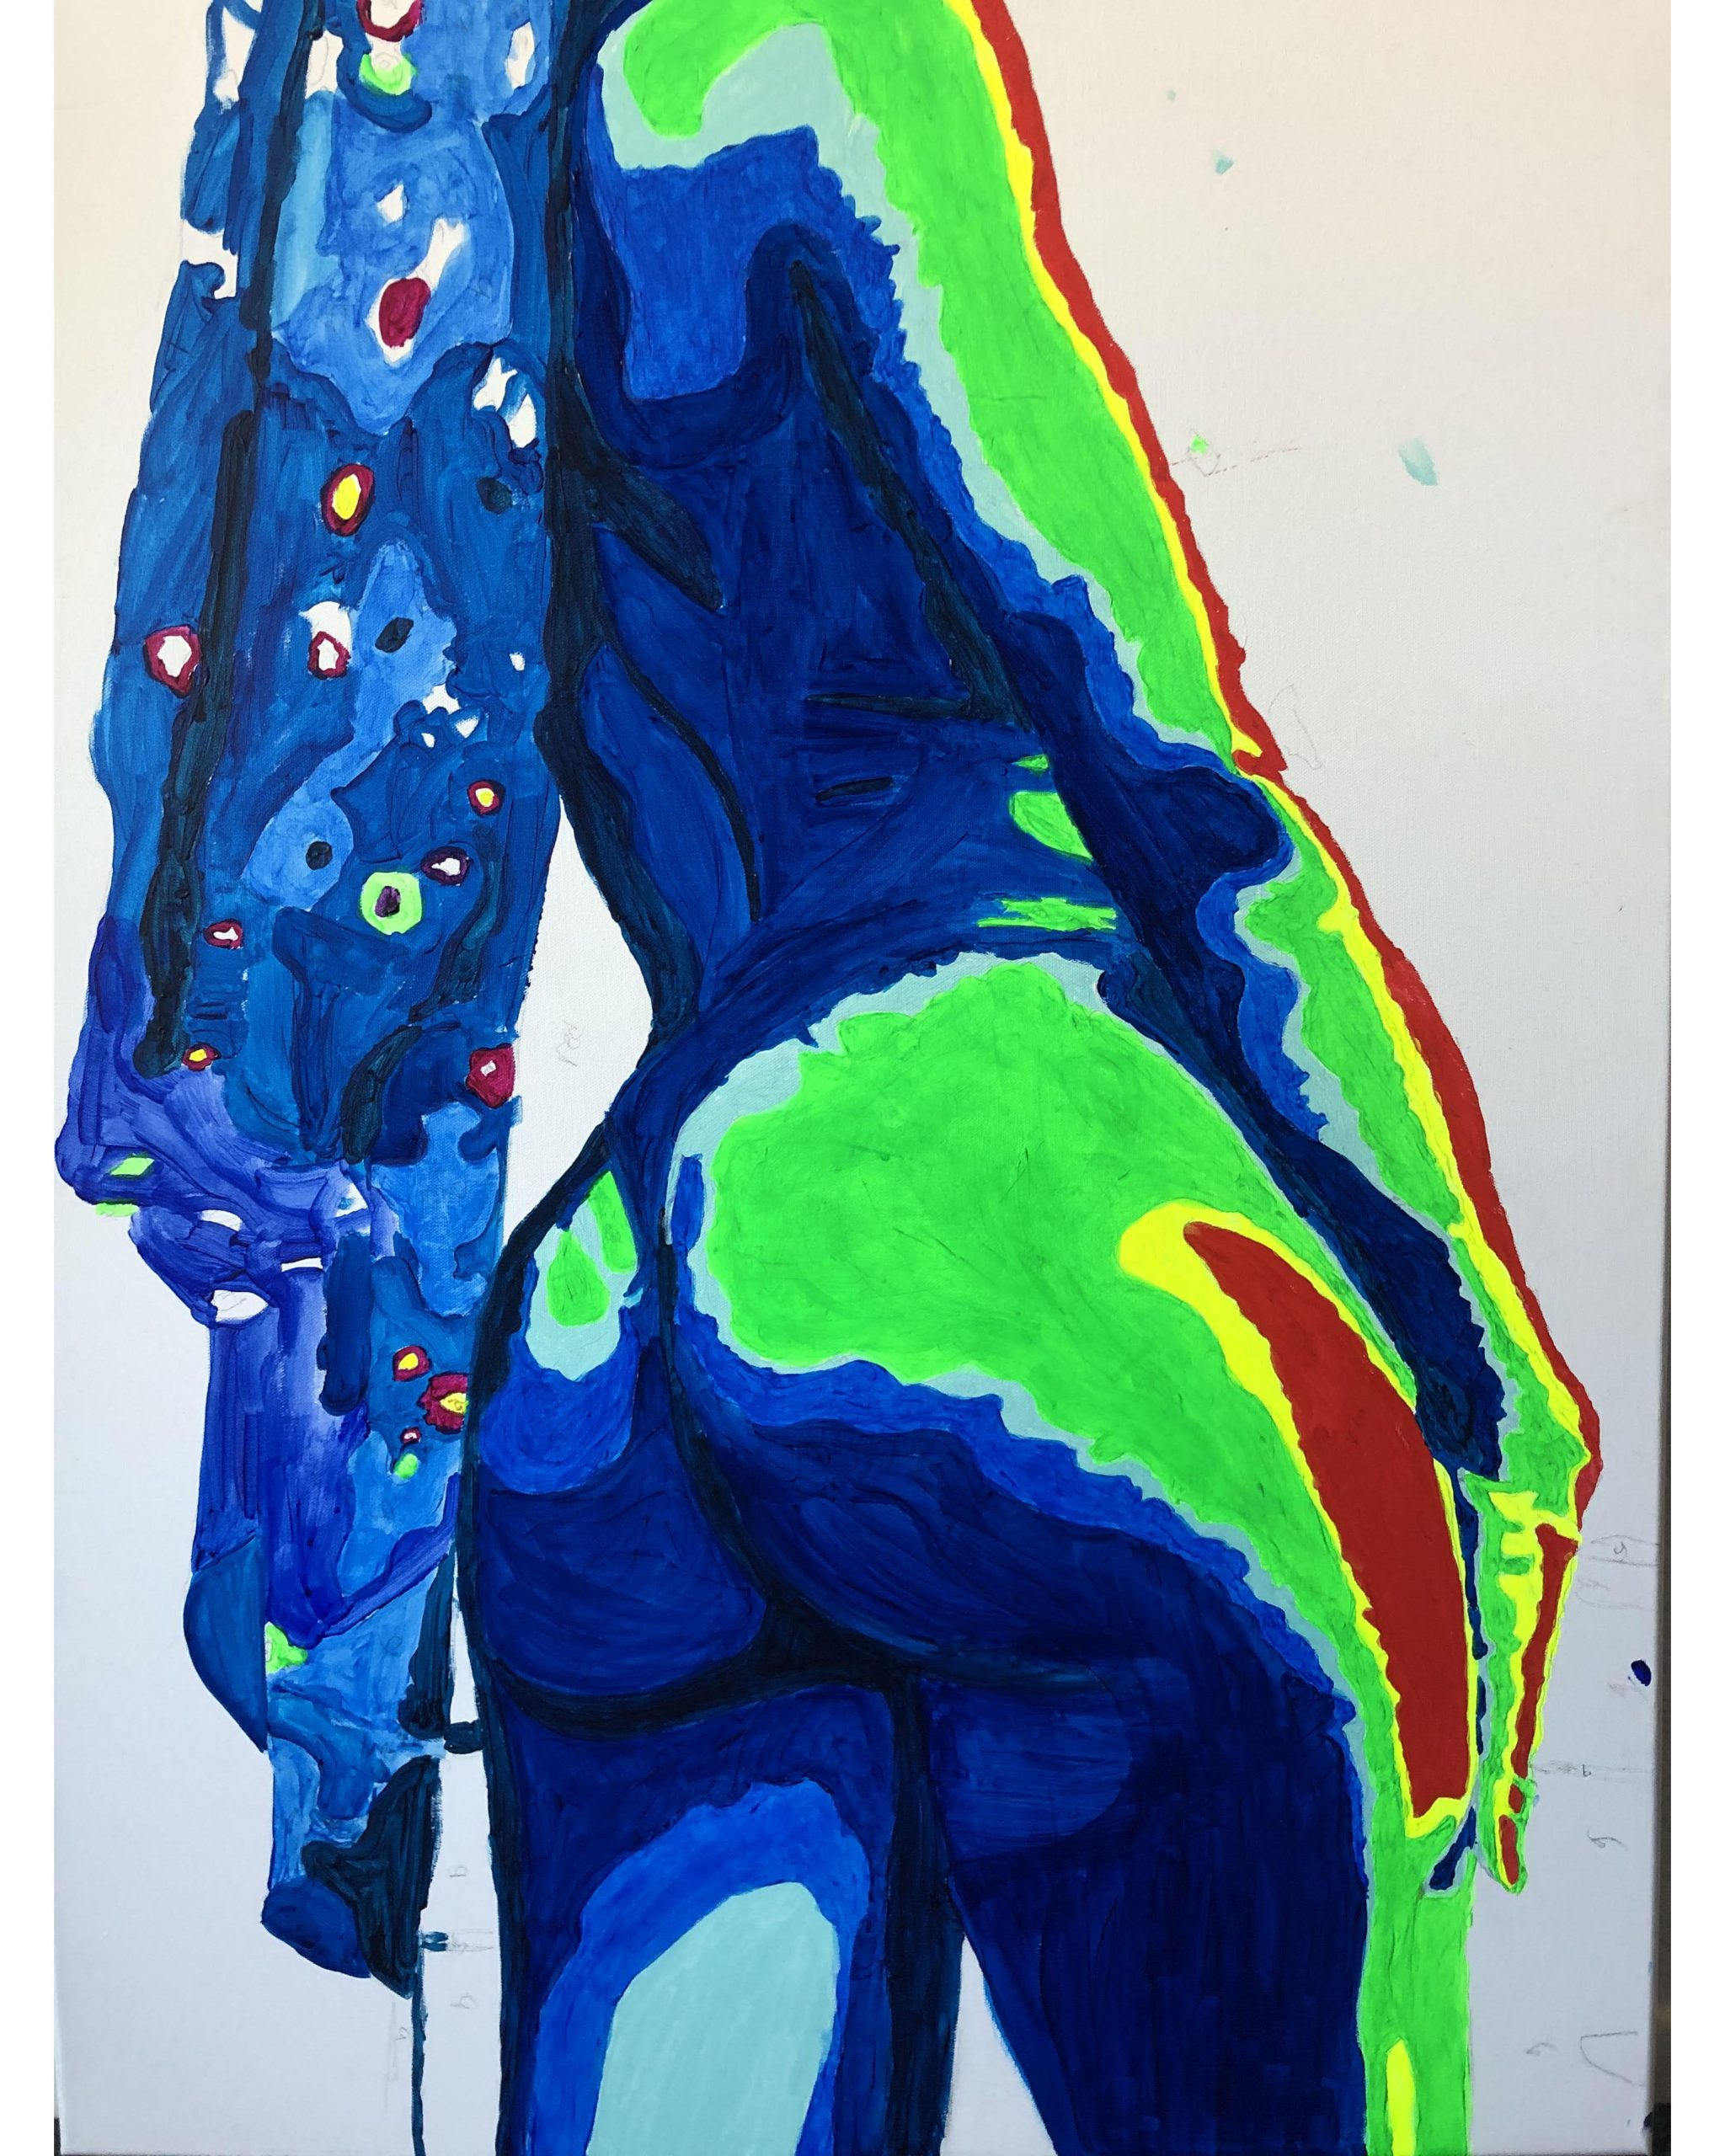 silhouette of a woman's body painted in blue, green, yellow, and red